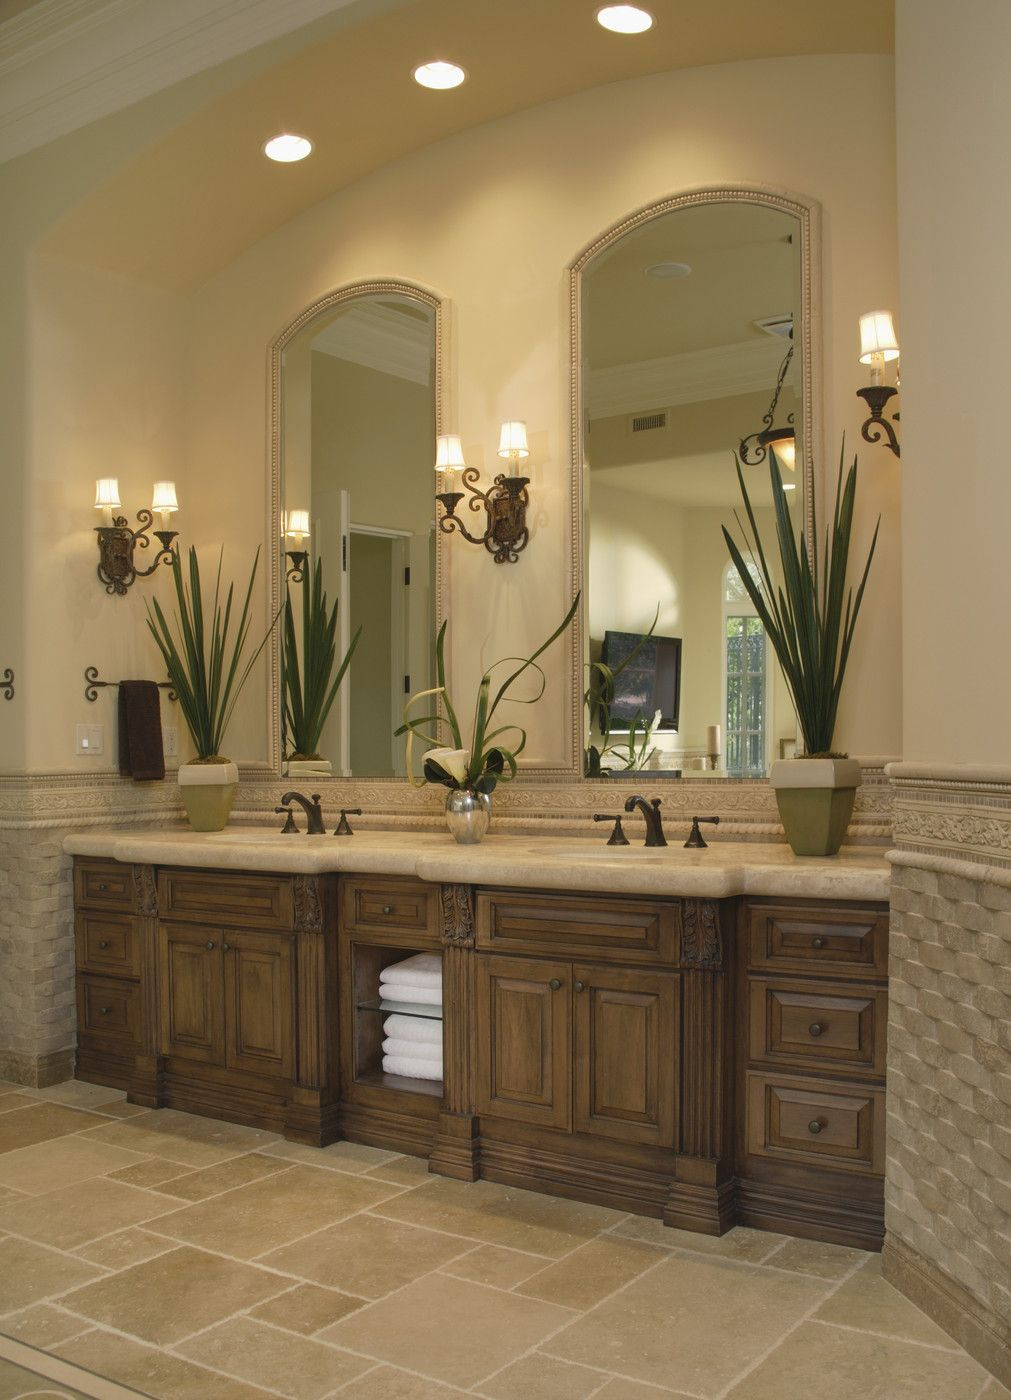 Bathroom Vanity Lights Denver bathroom photos | traditional bathroom, traditional and bathroom